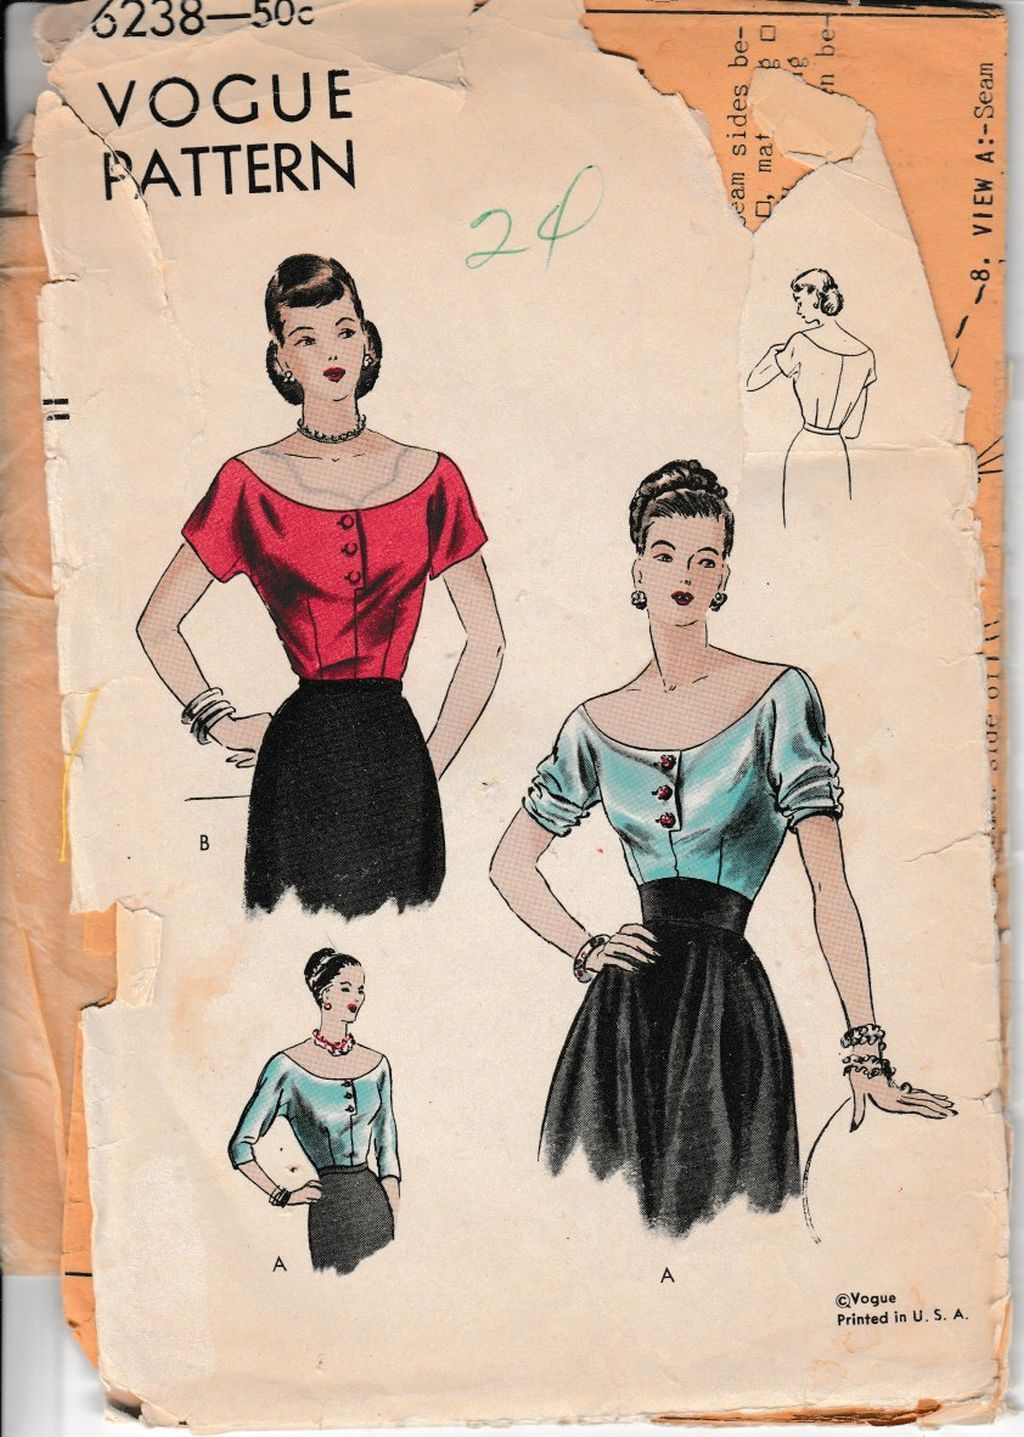 Vogue 6238 Ladies Off Shoulder Blouse Vintage 1940's Sewing Pattern Unprinted - VintageStitching - Vintage Sewing Patterns